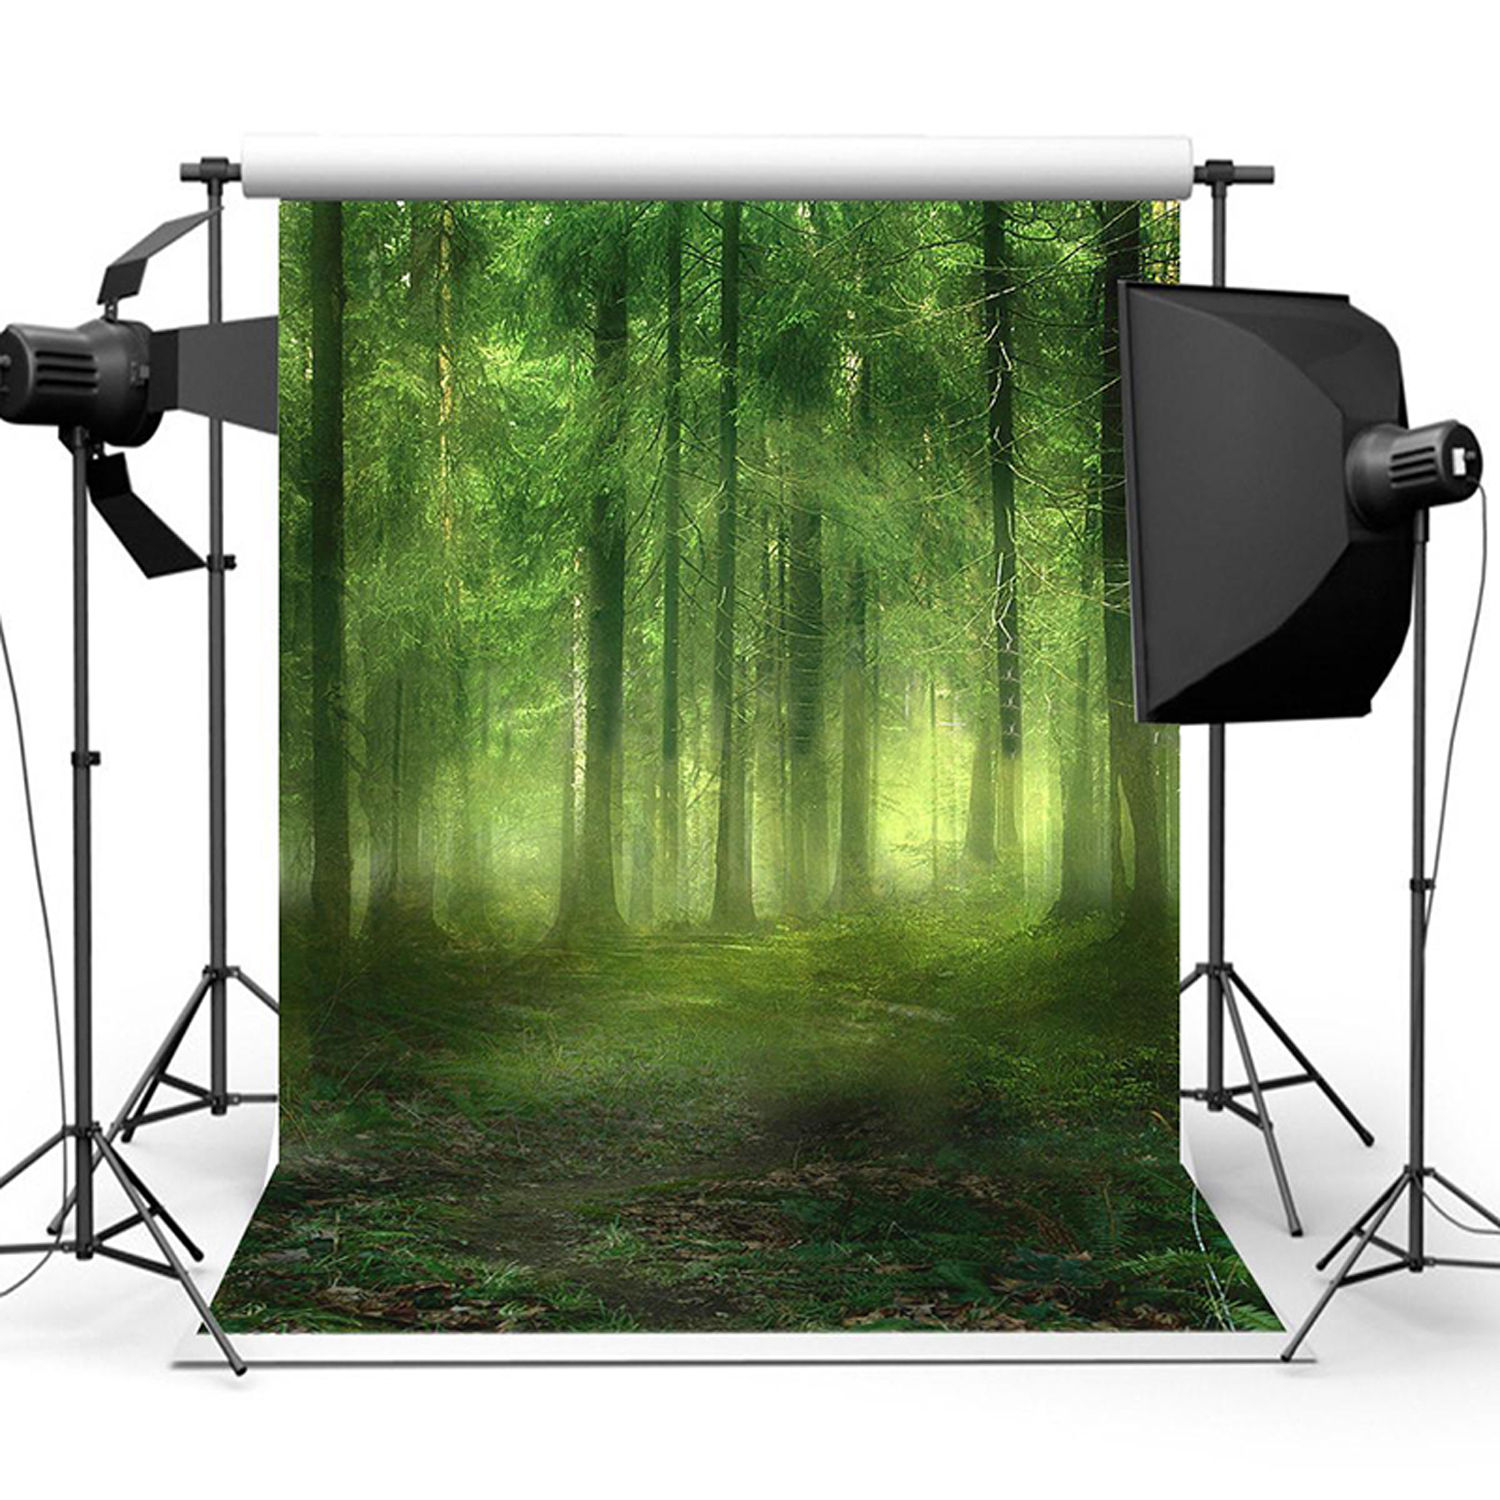 5x7ft Studio Photo Video Photography Backdrops Enchanted Forest Printed Vinyl Fabric Party Decorations Background Screen Props